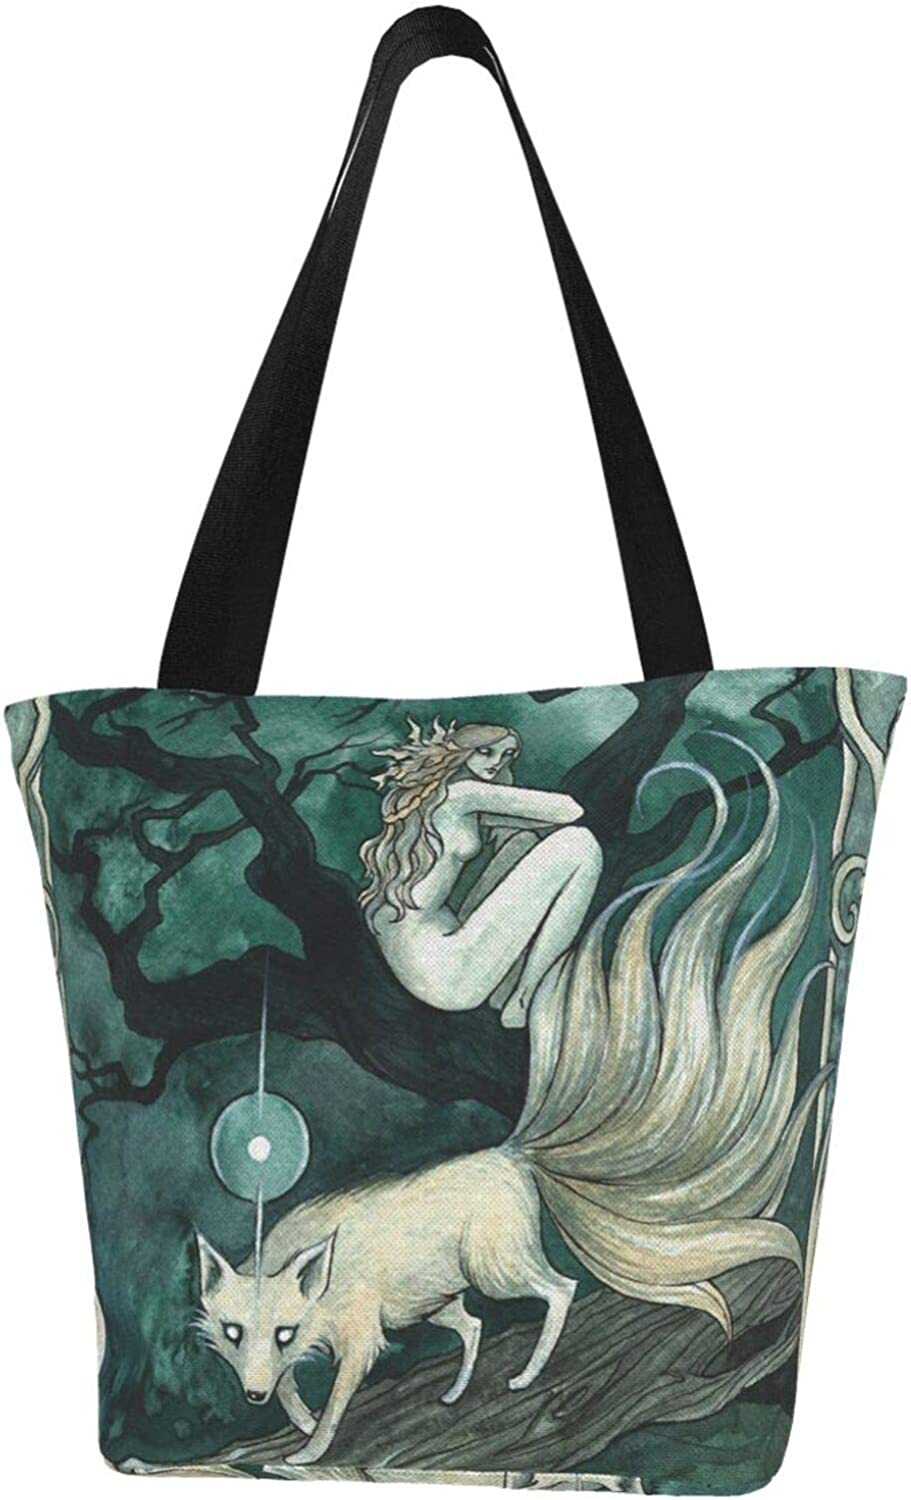 Wicca Wiccan Fox Folklore Themed Printed Women Canvas Handbag Zipper Shoulder Bag Work Booksbag Tote Purse Leisure Hobo Bag For Shopping